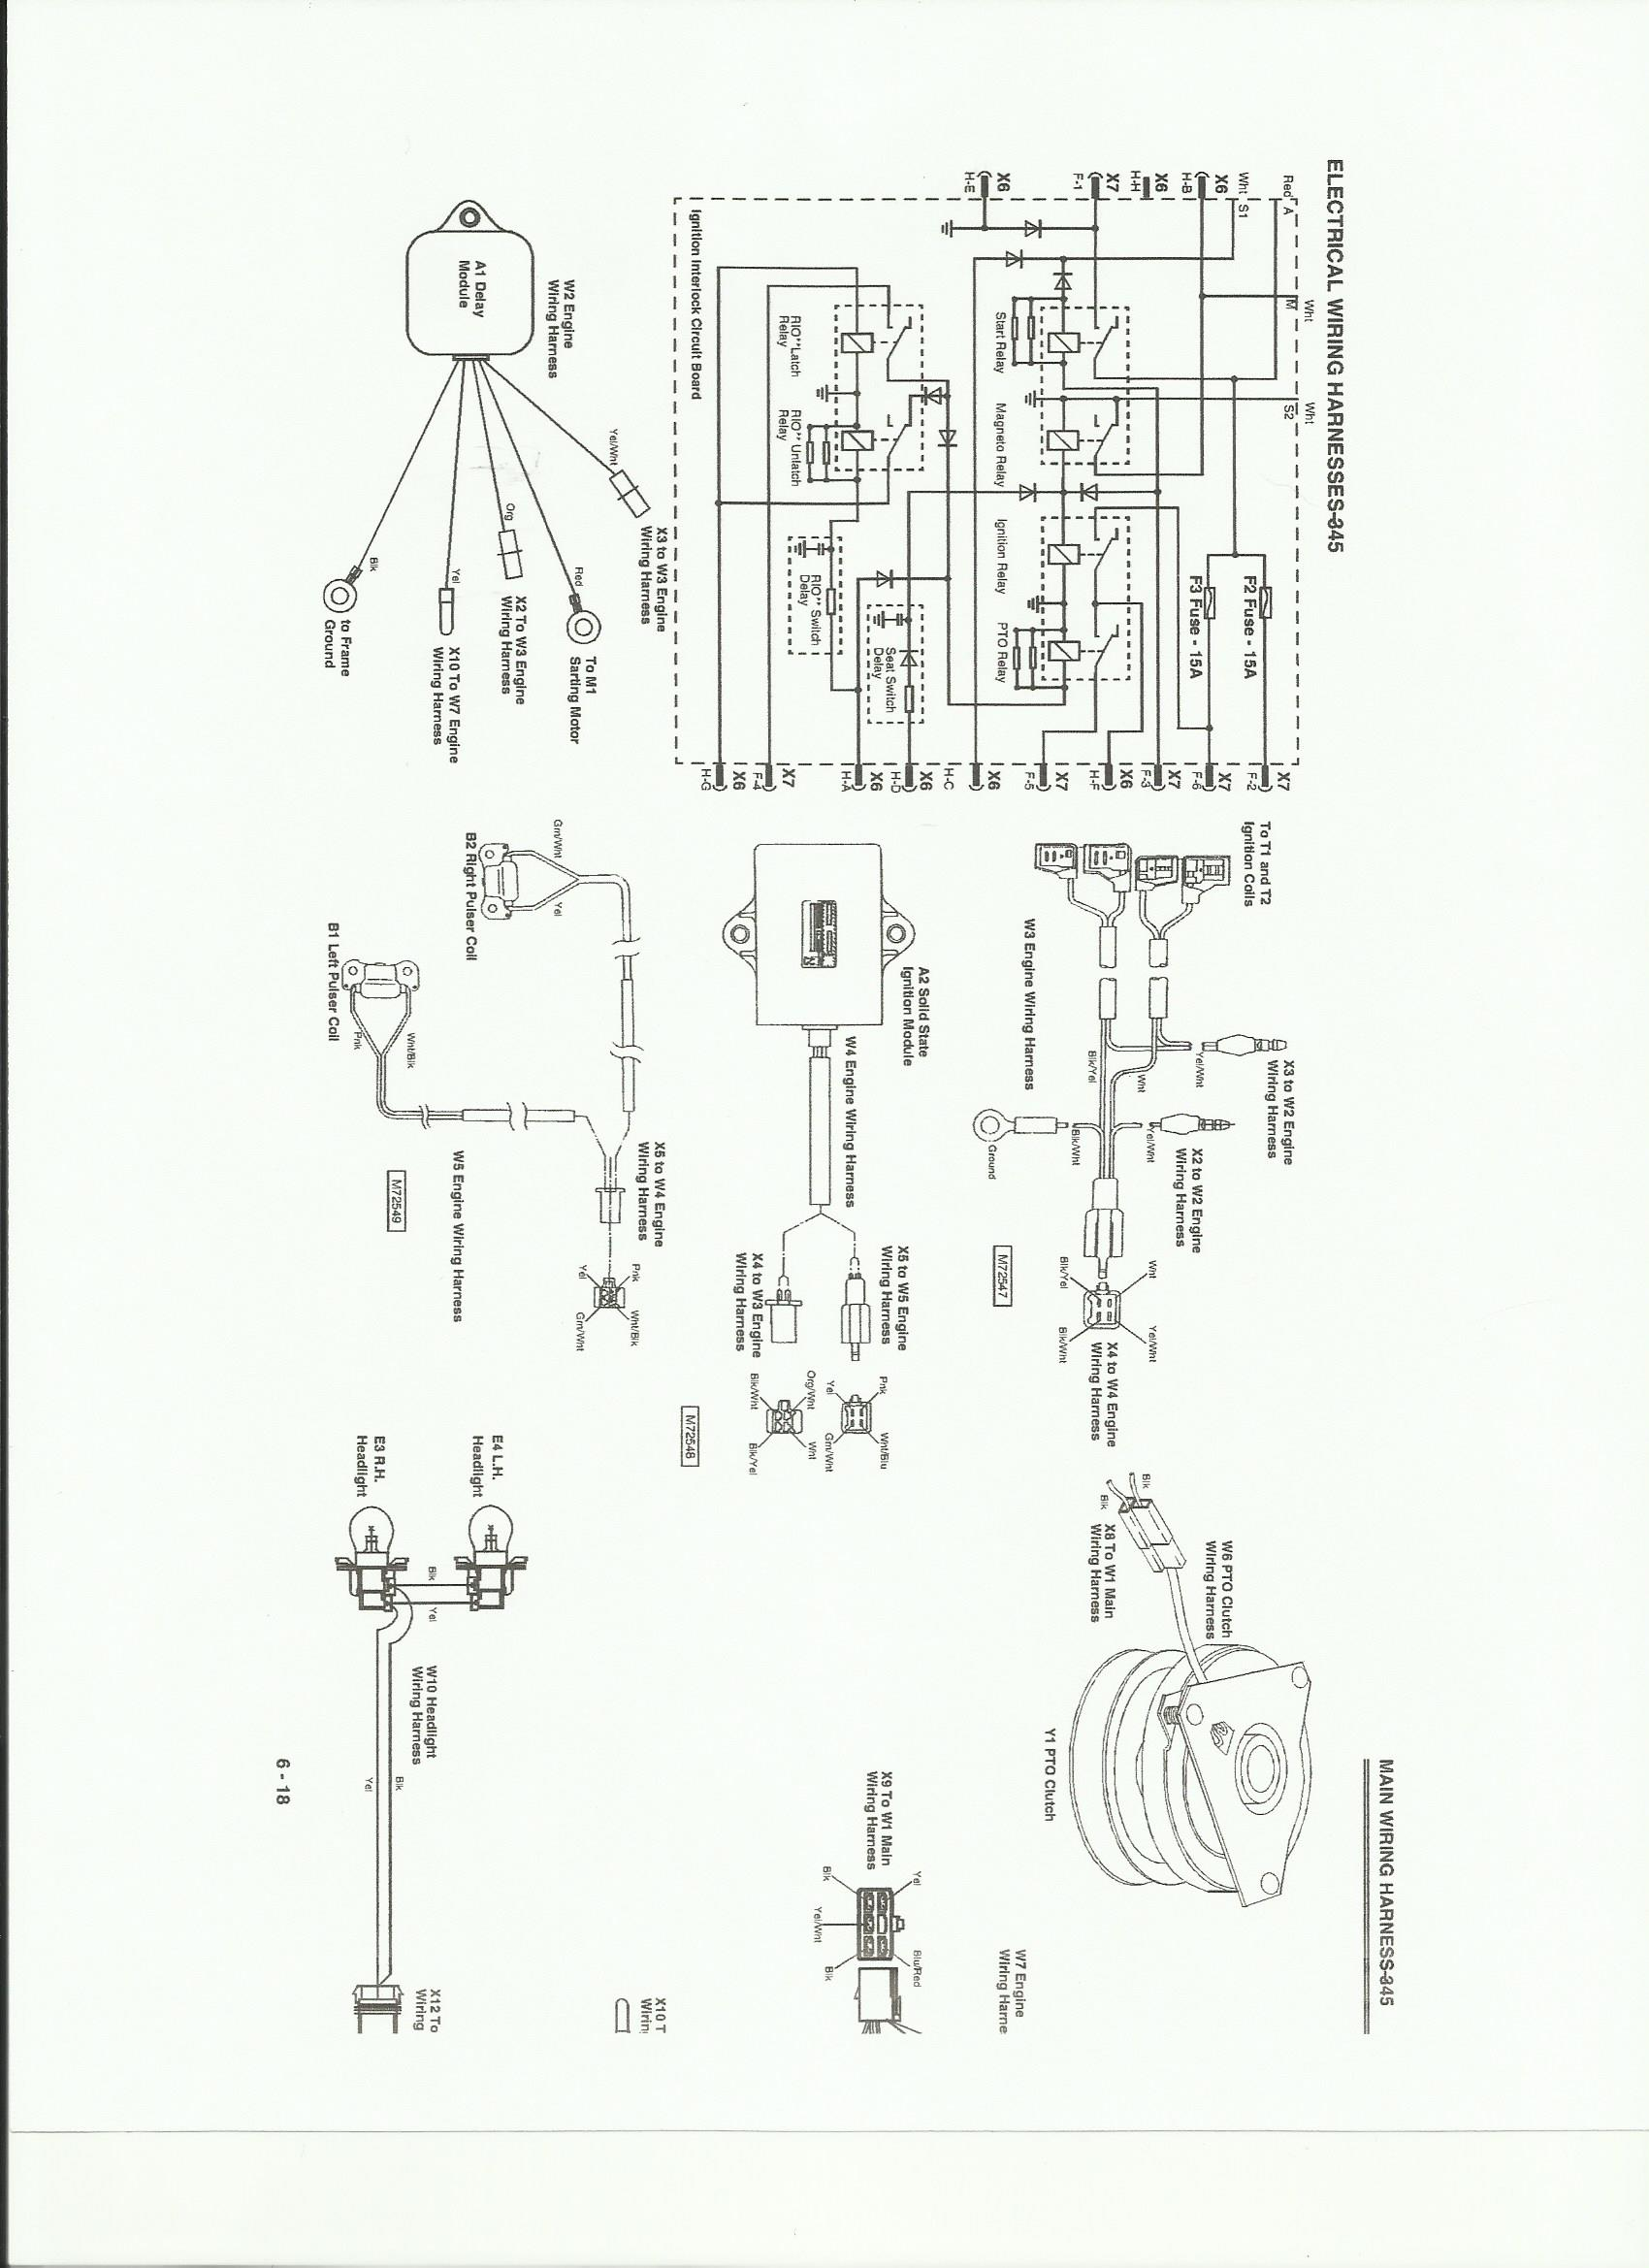 Need A 345 Wiring Diagram Pdf Please The John Deere Kawasaki Diagrams Click Image For Larger Version Name Electrical 3 Views 860 Size